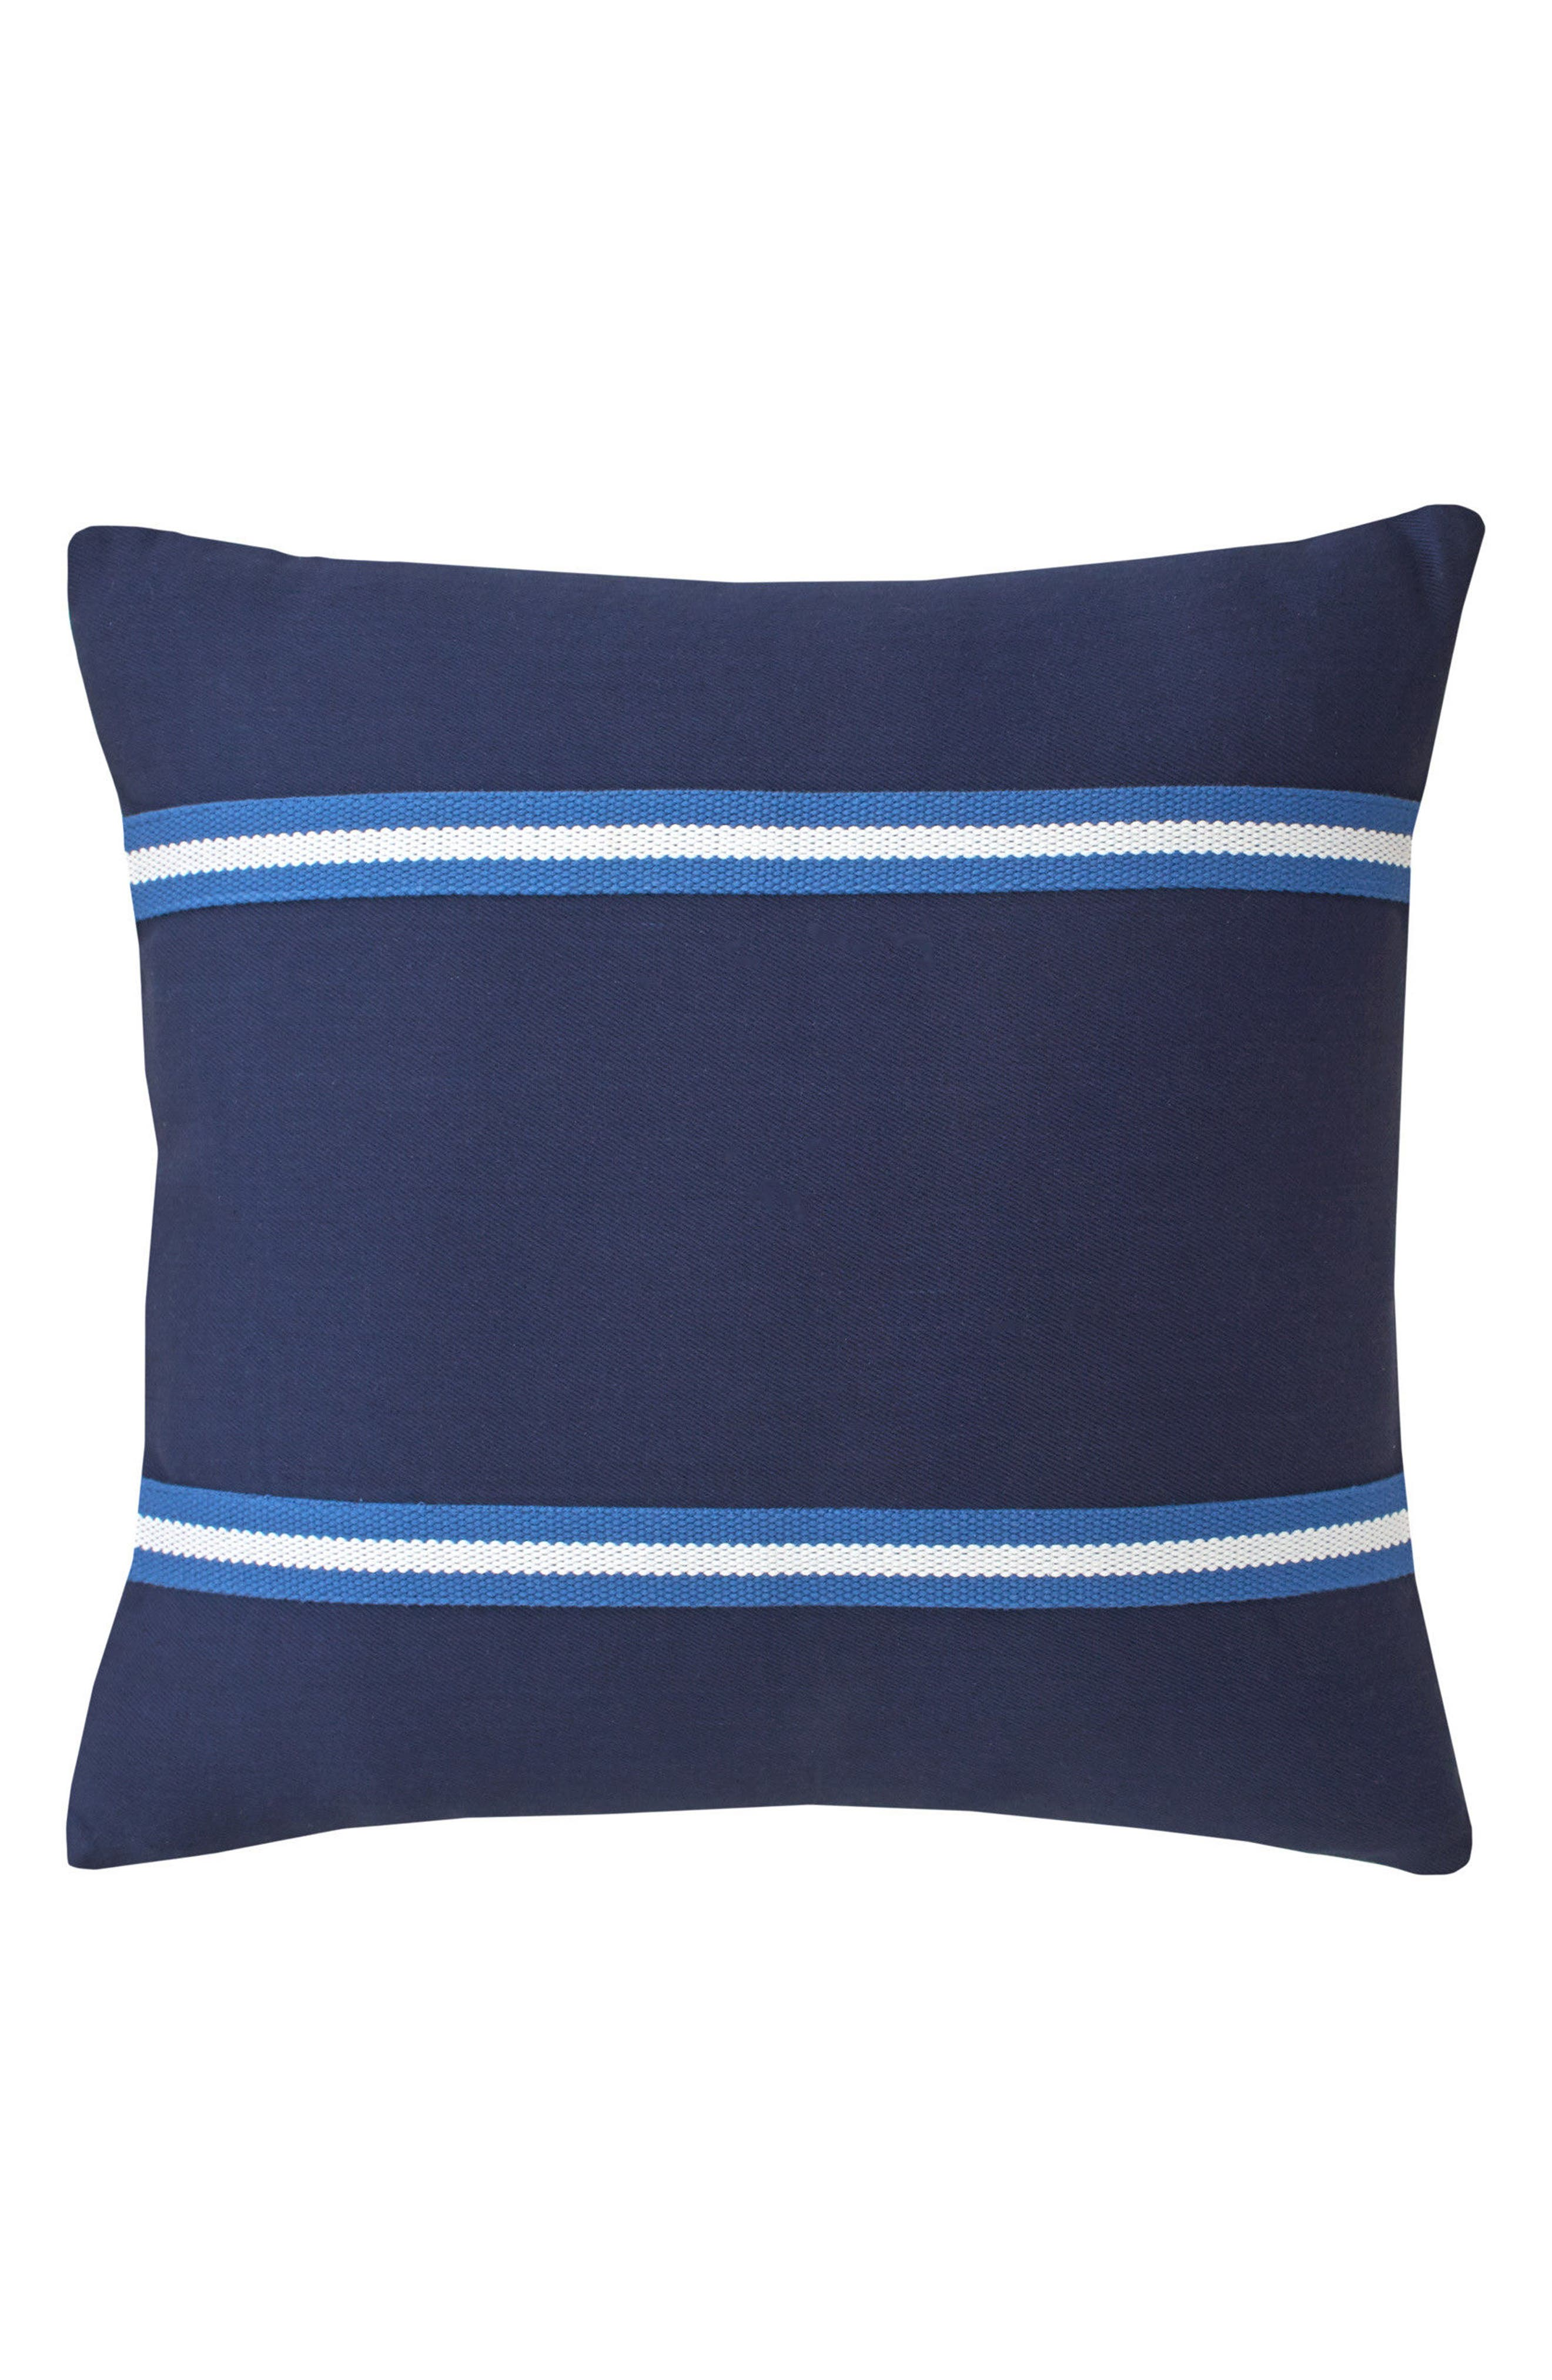 Dock Street Stripe Tape Accent Pillow,                         Main,                         color, 400